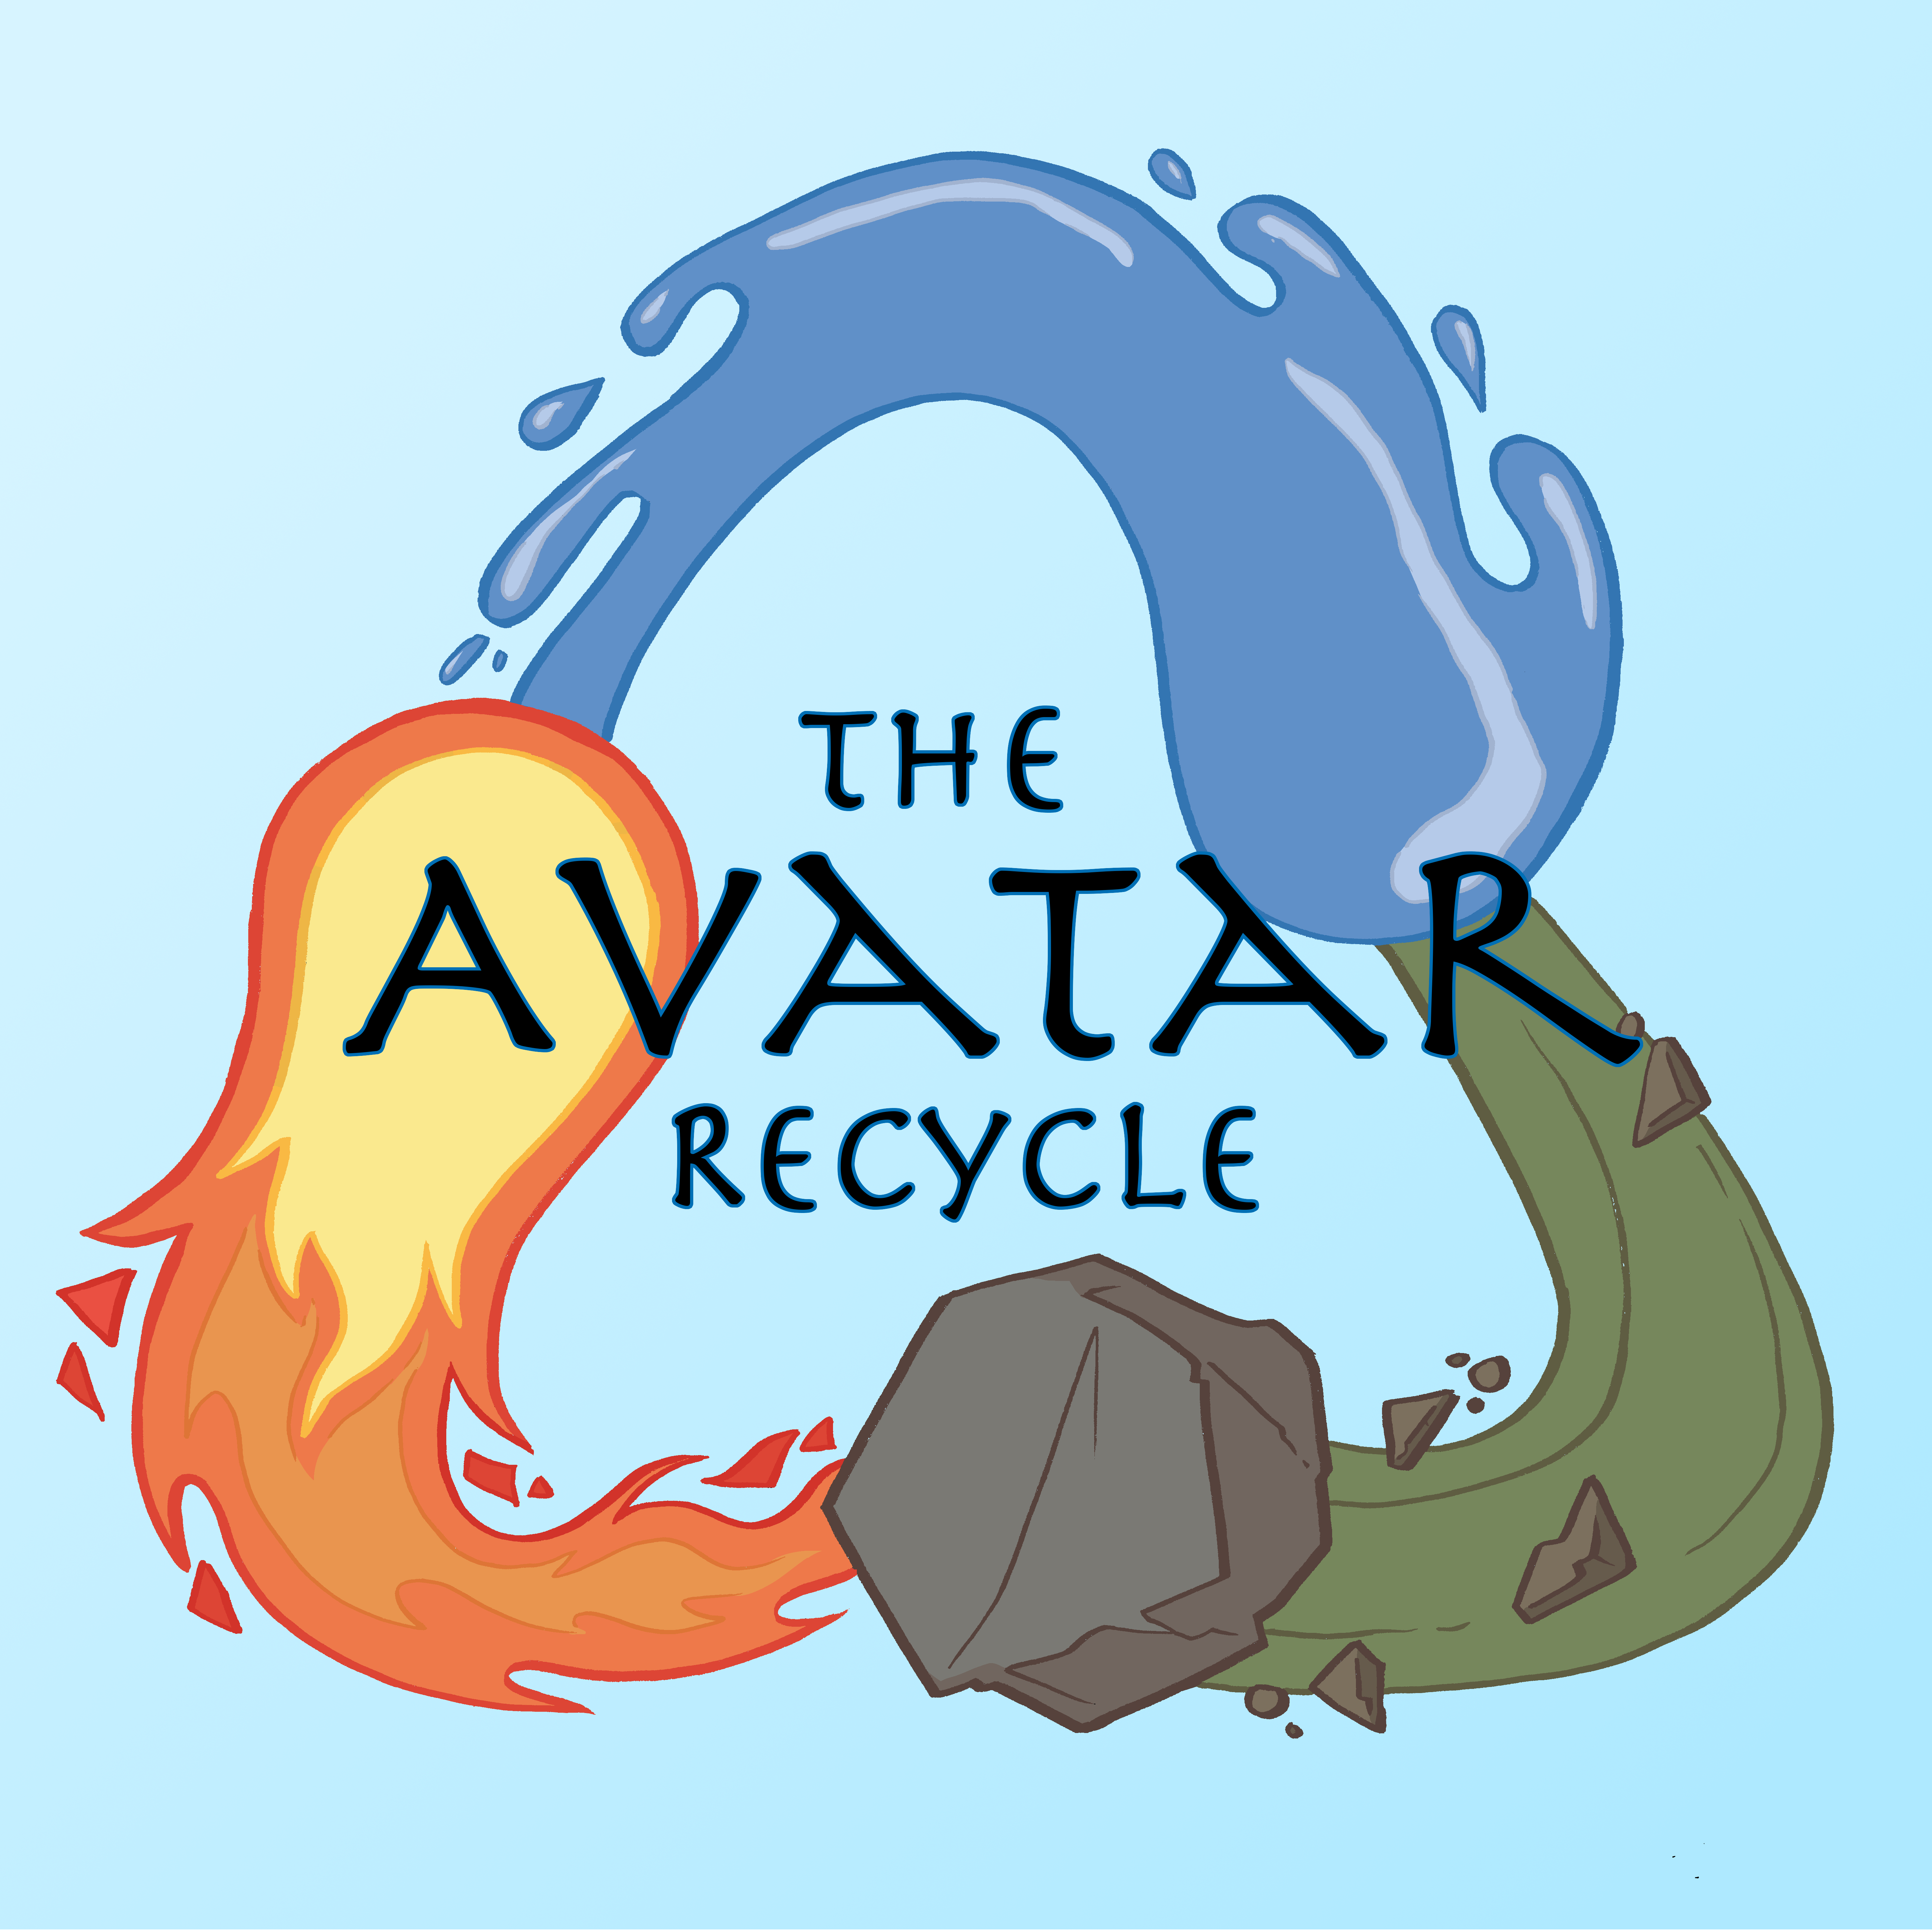 Artwork for The Avatar Recycle - Trailer